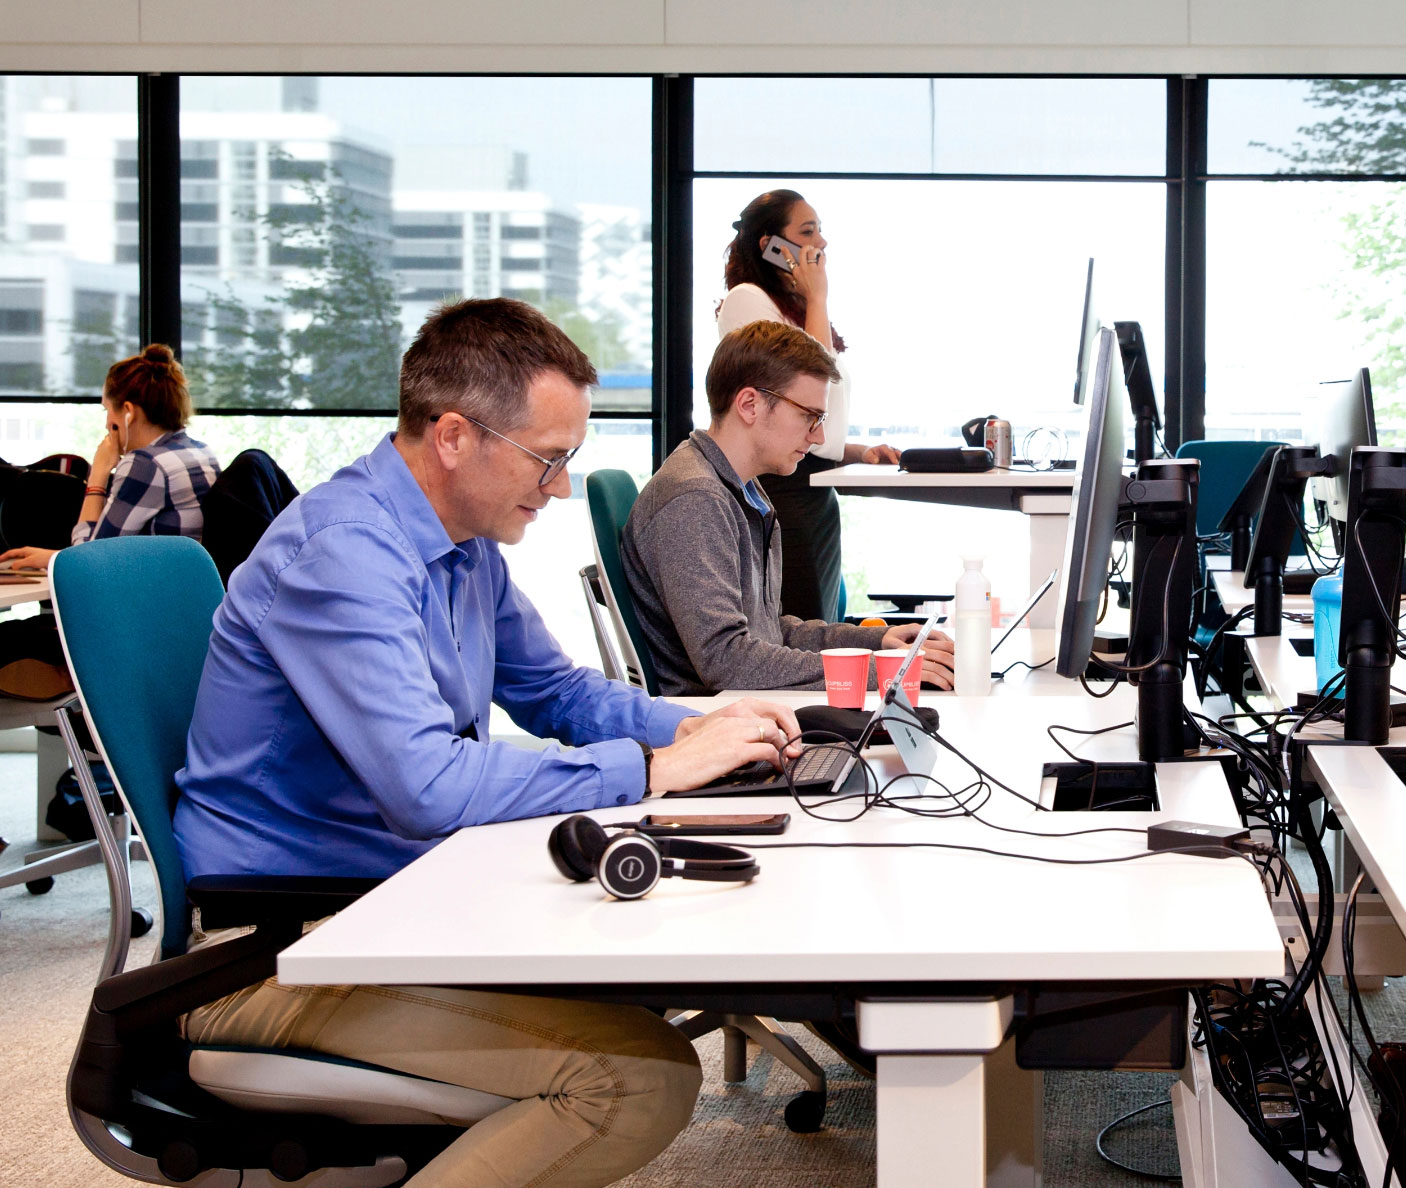 people working on the computer and answering phones in the office